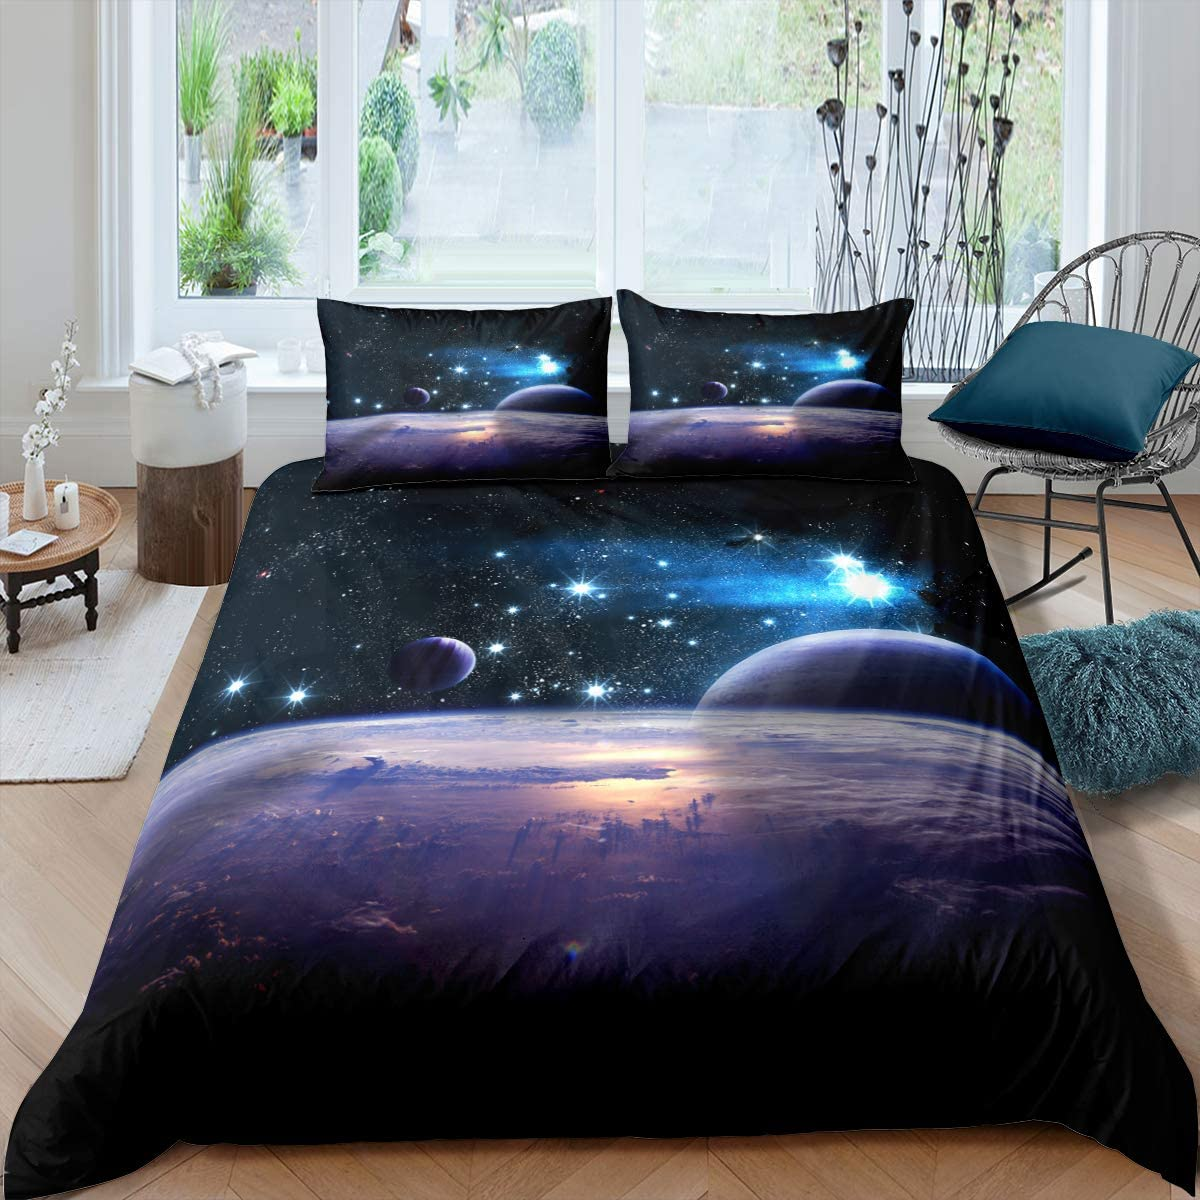 Queen 3-Piece Galaxies Comforter Sets 3D Printed Space Overseas parallel Max 83% OFF import regular item - Themed